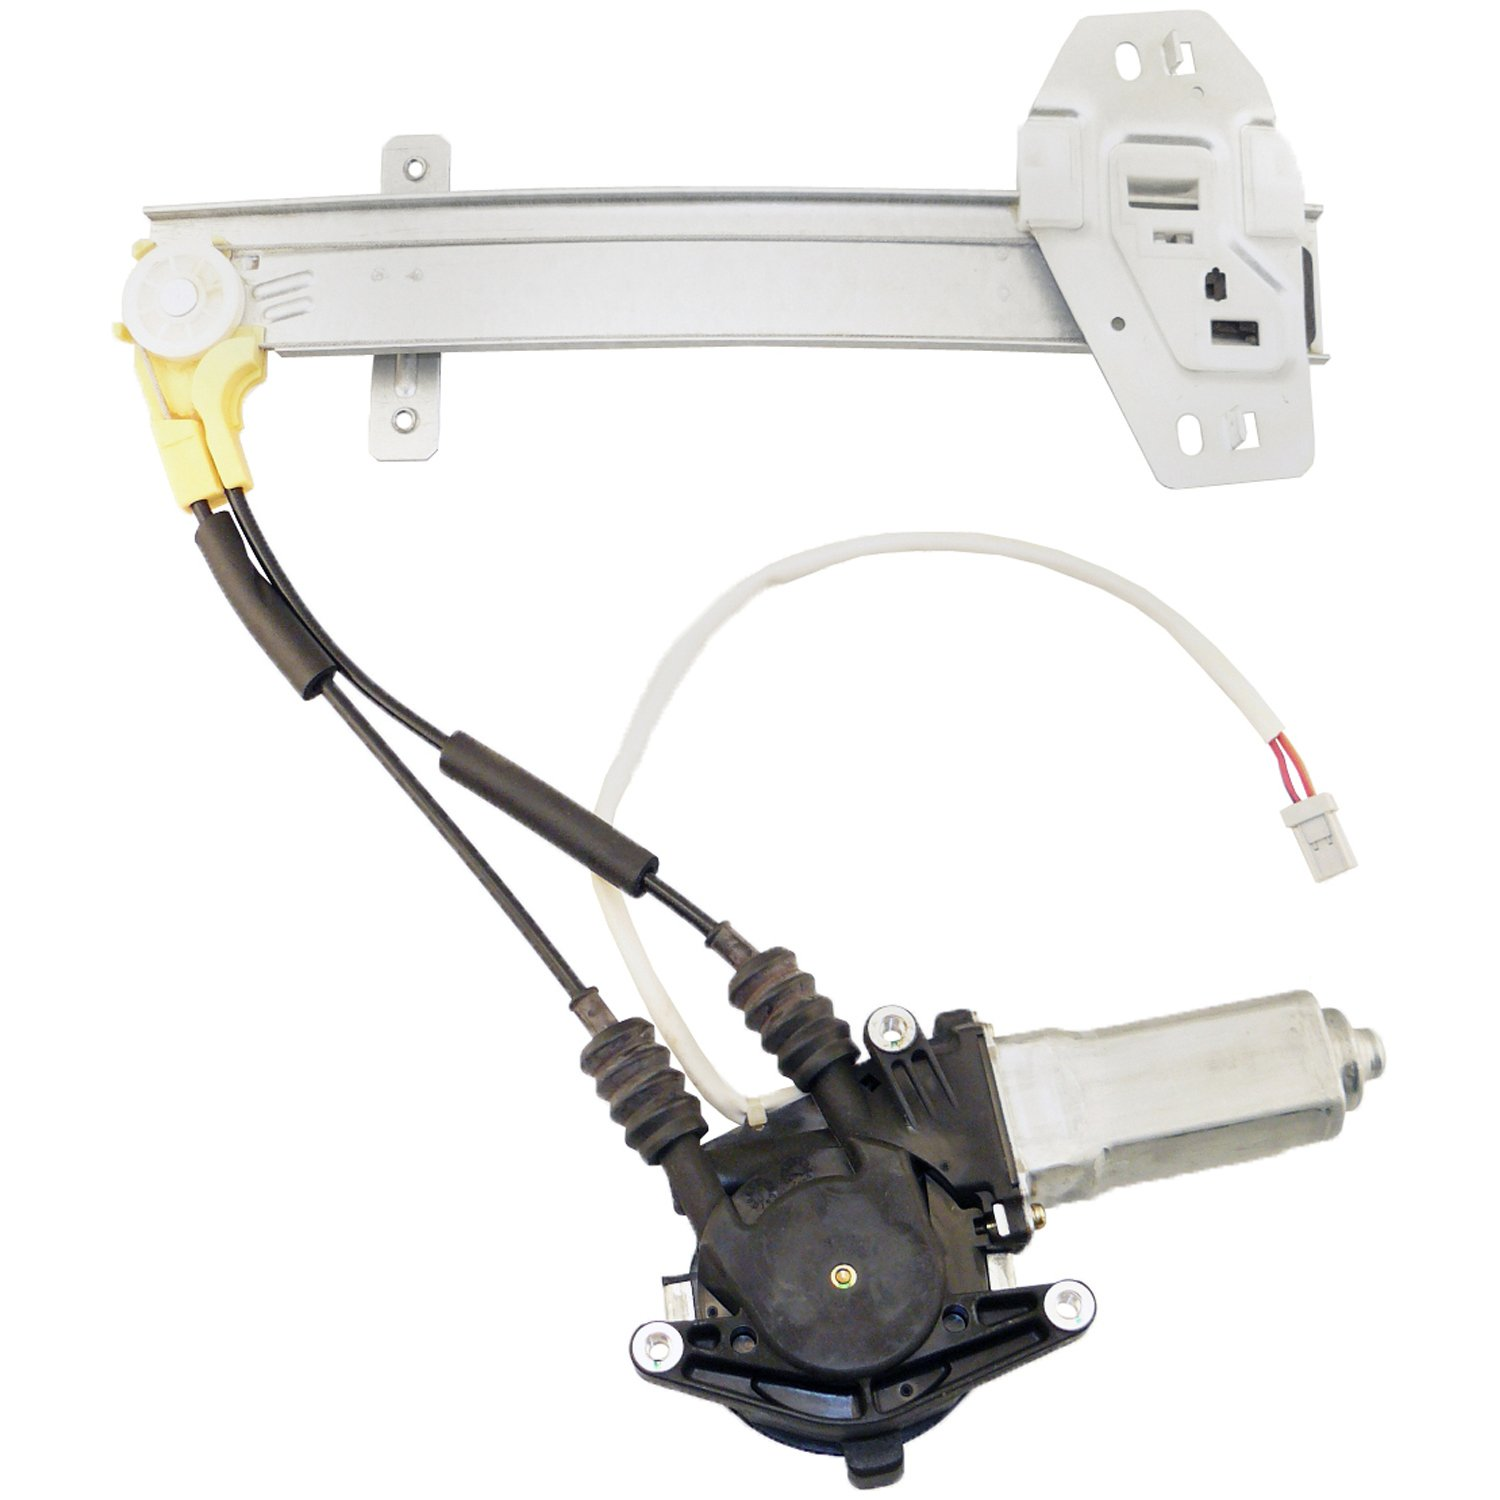 ACDelco 11A169 Professional Rear Driver Side Power Window Regulator with Motor